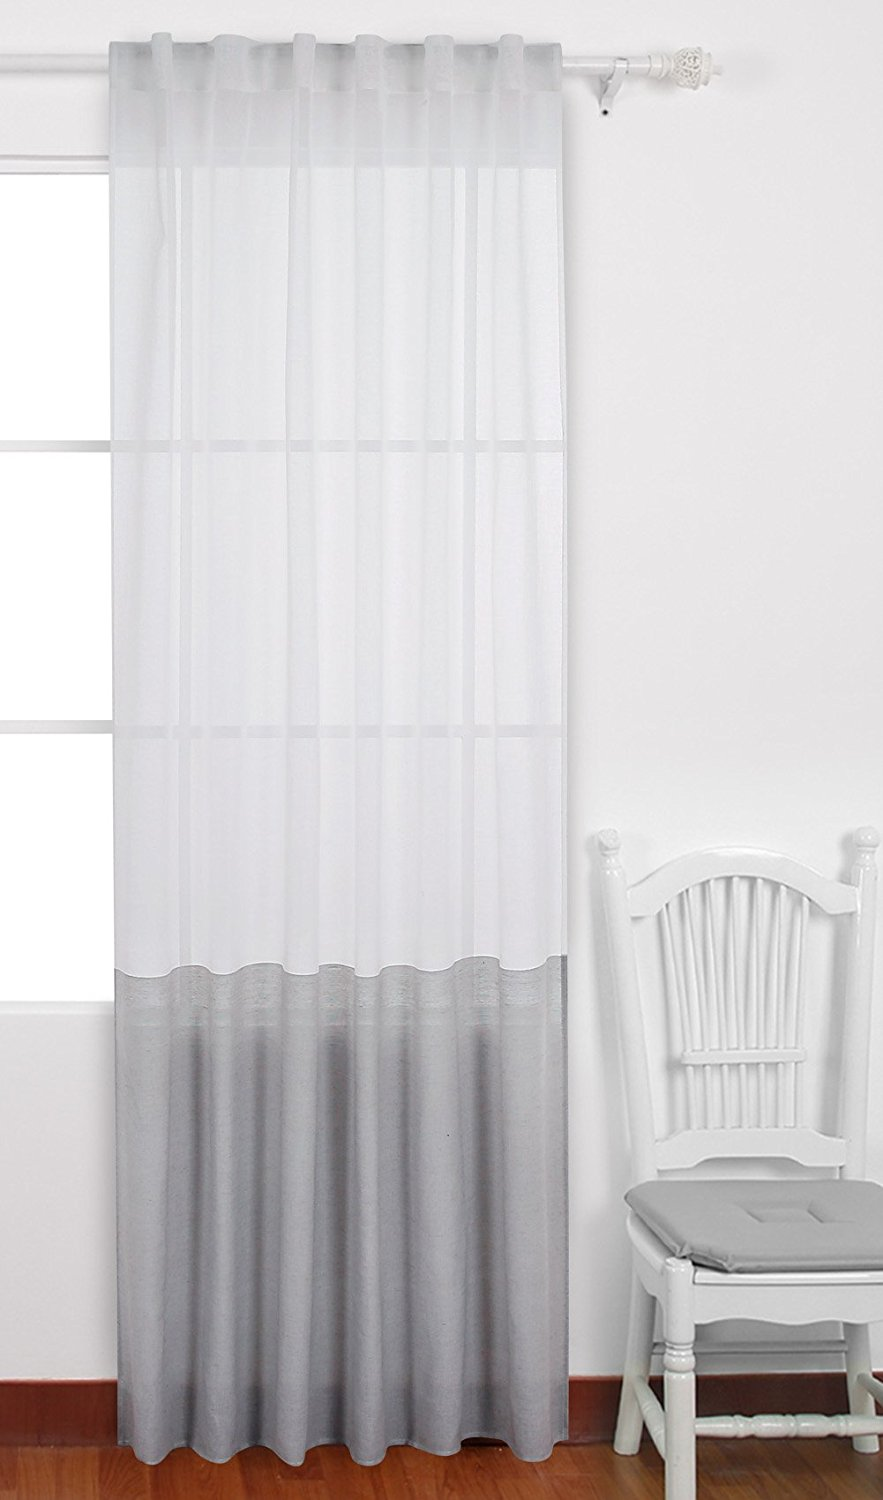 Buy Deconovo Decorative Patchwork Sheer Curtains Spliced Faux Linen Curtains Back Tab And Rod Pocket Curtains Window Treatments For Bedroom 52 X 96 Inch Light Grey 1 Drape In Cheap Price On Alibaba Com